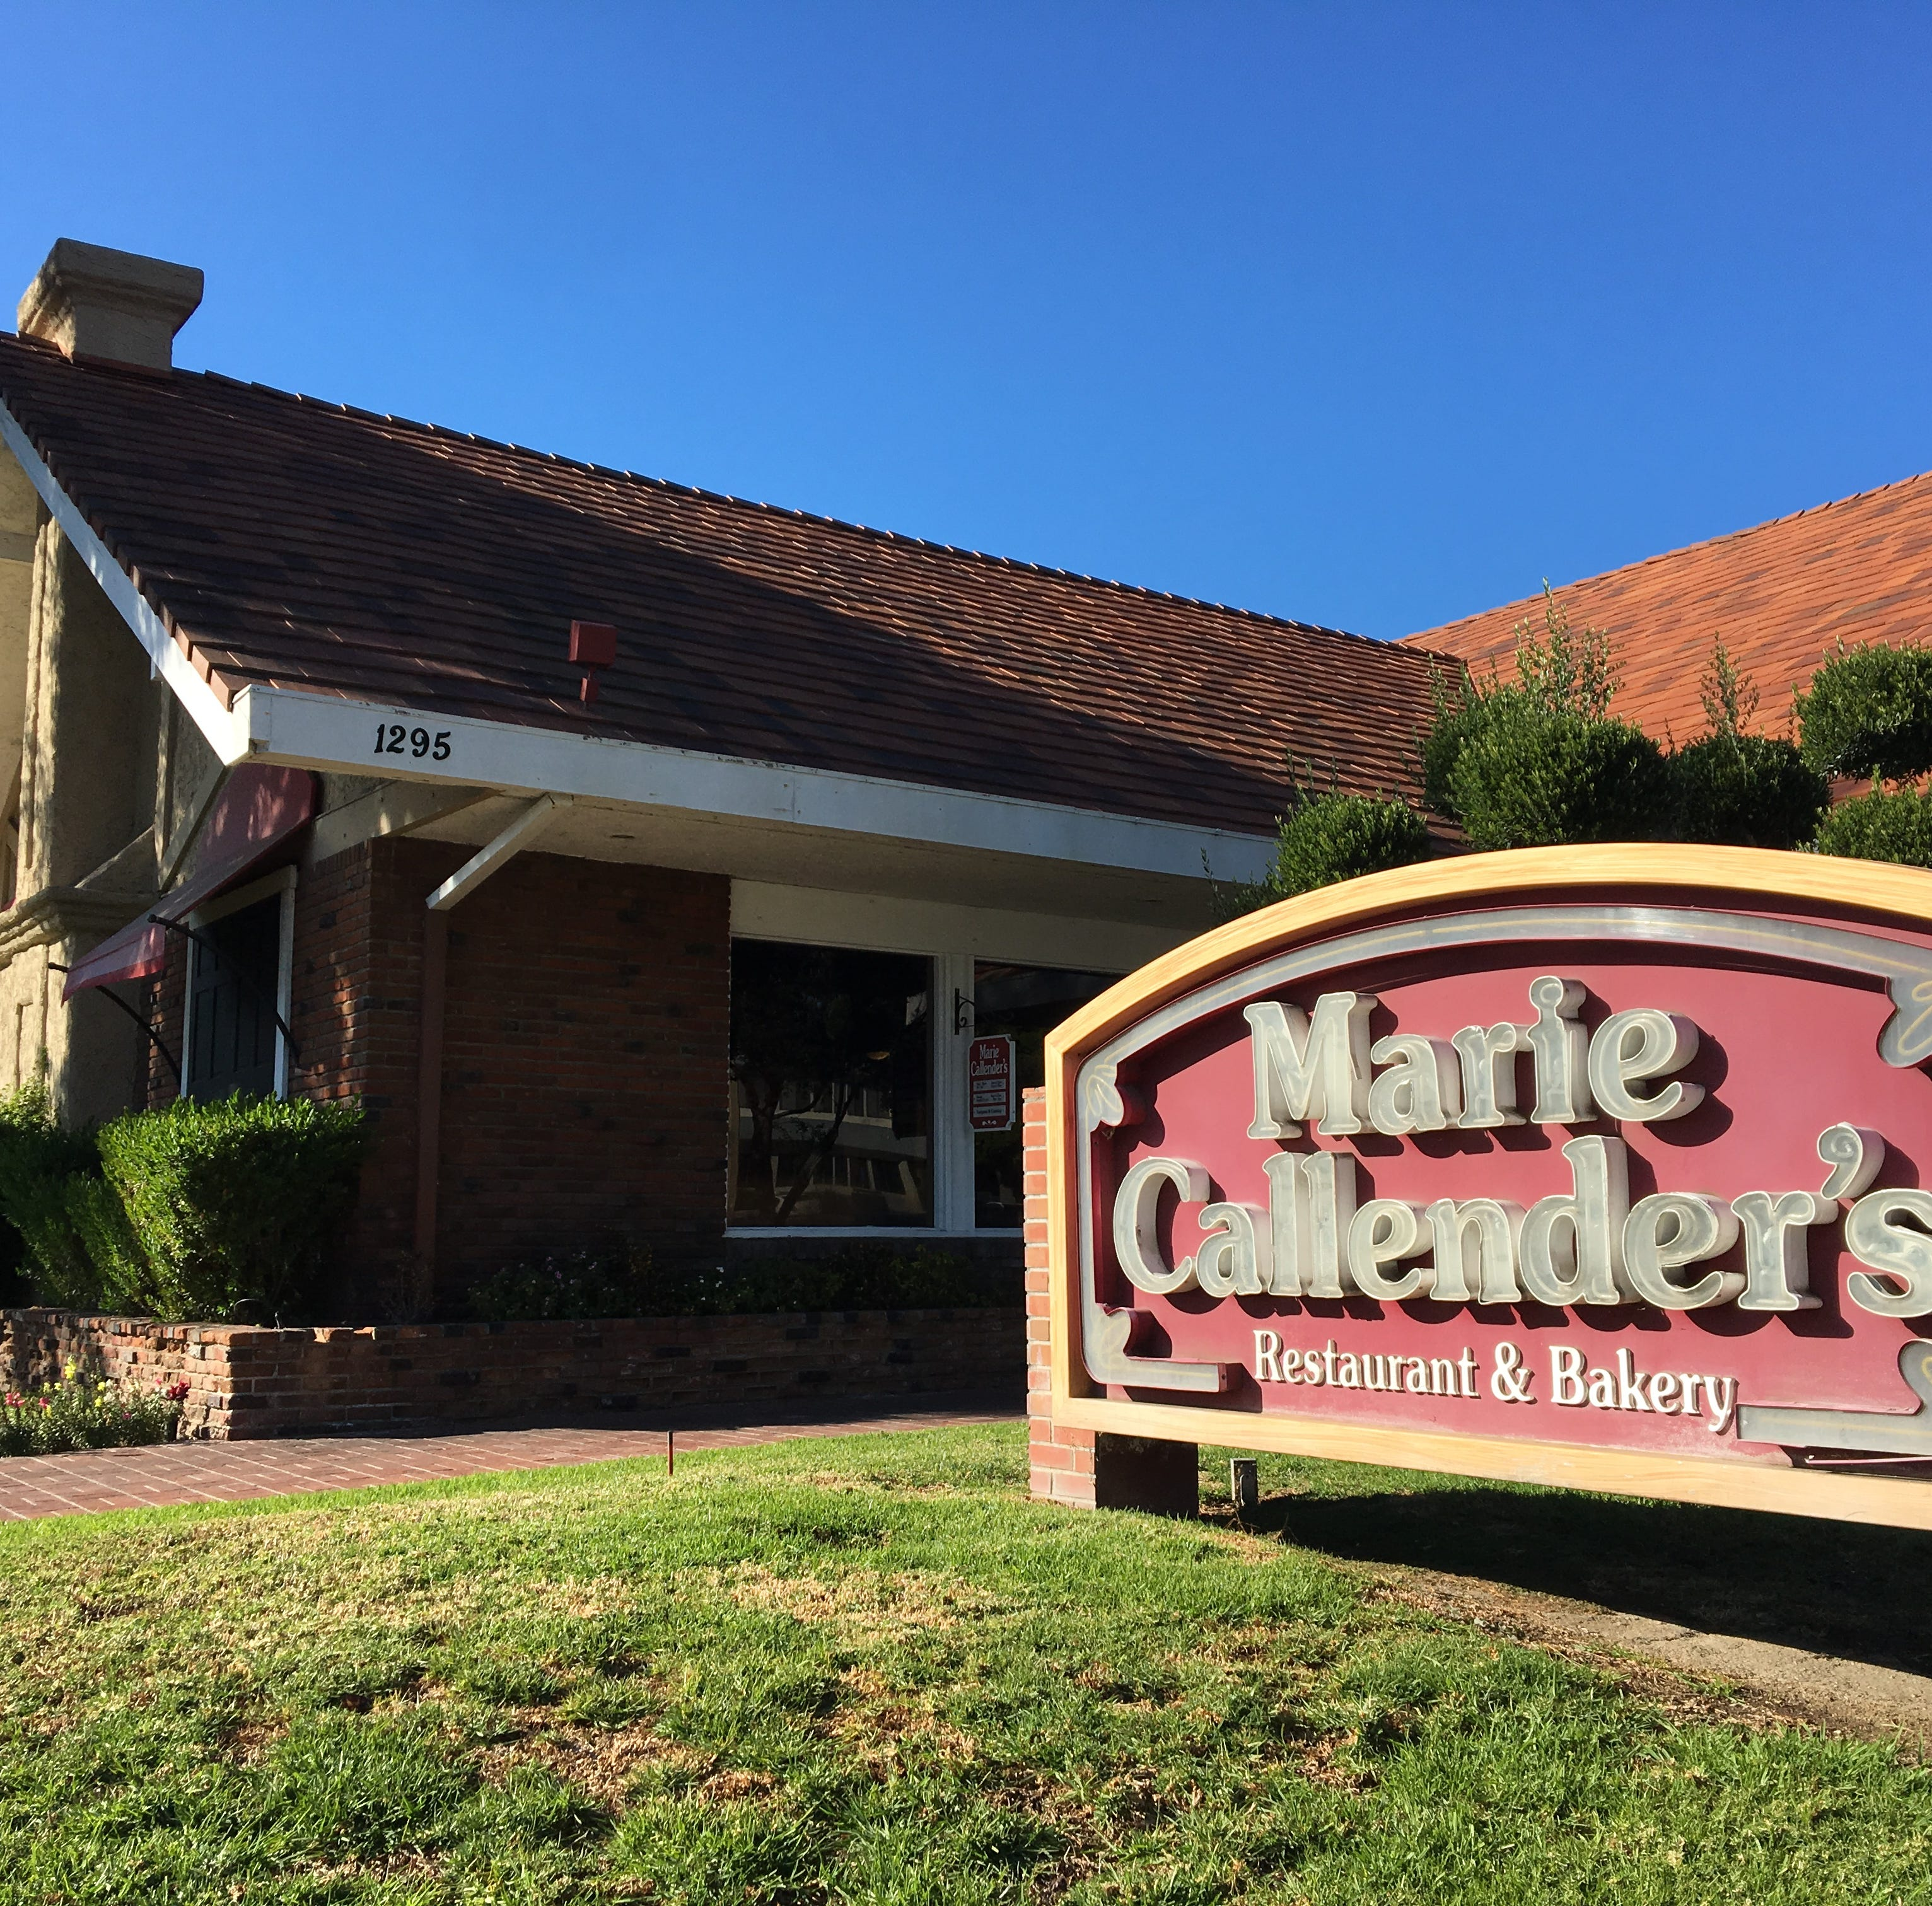 Marie Callender's to close after nearly 40 years in Ventura